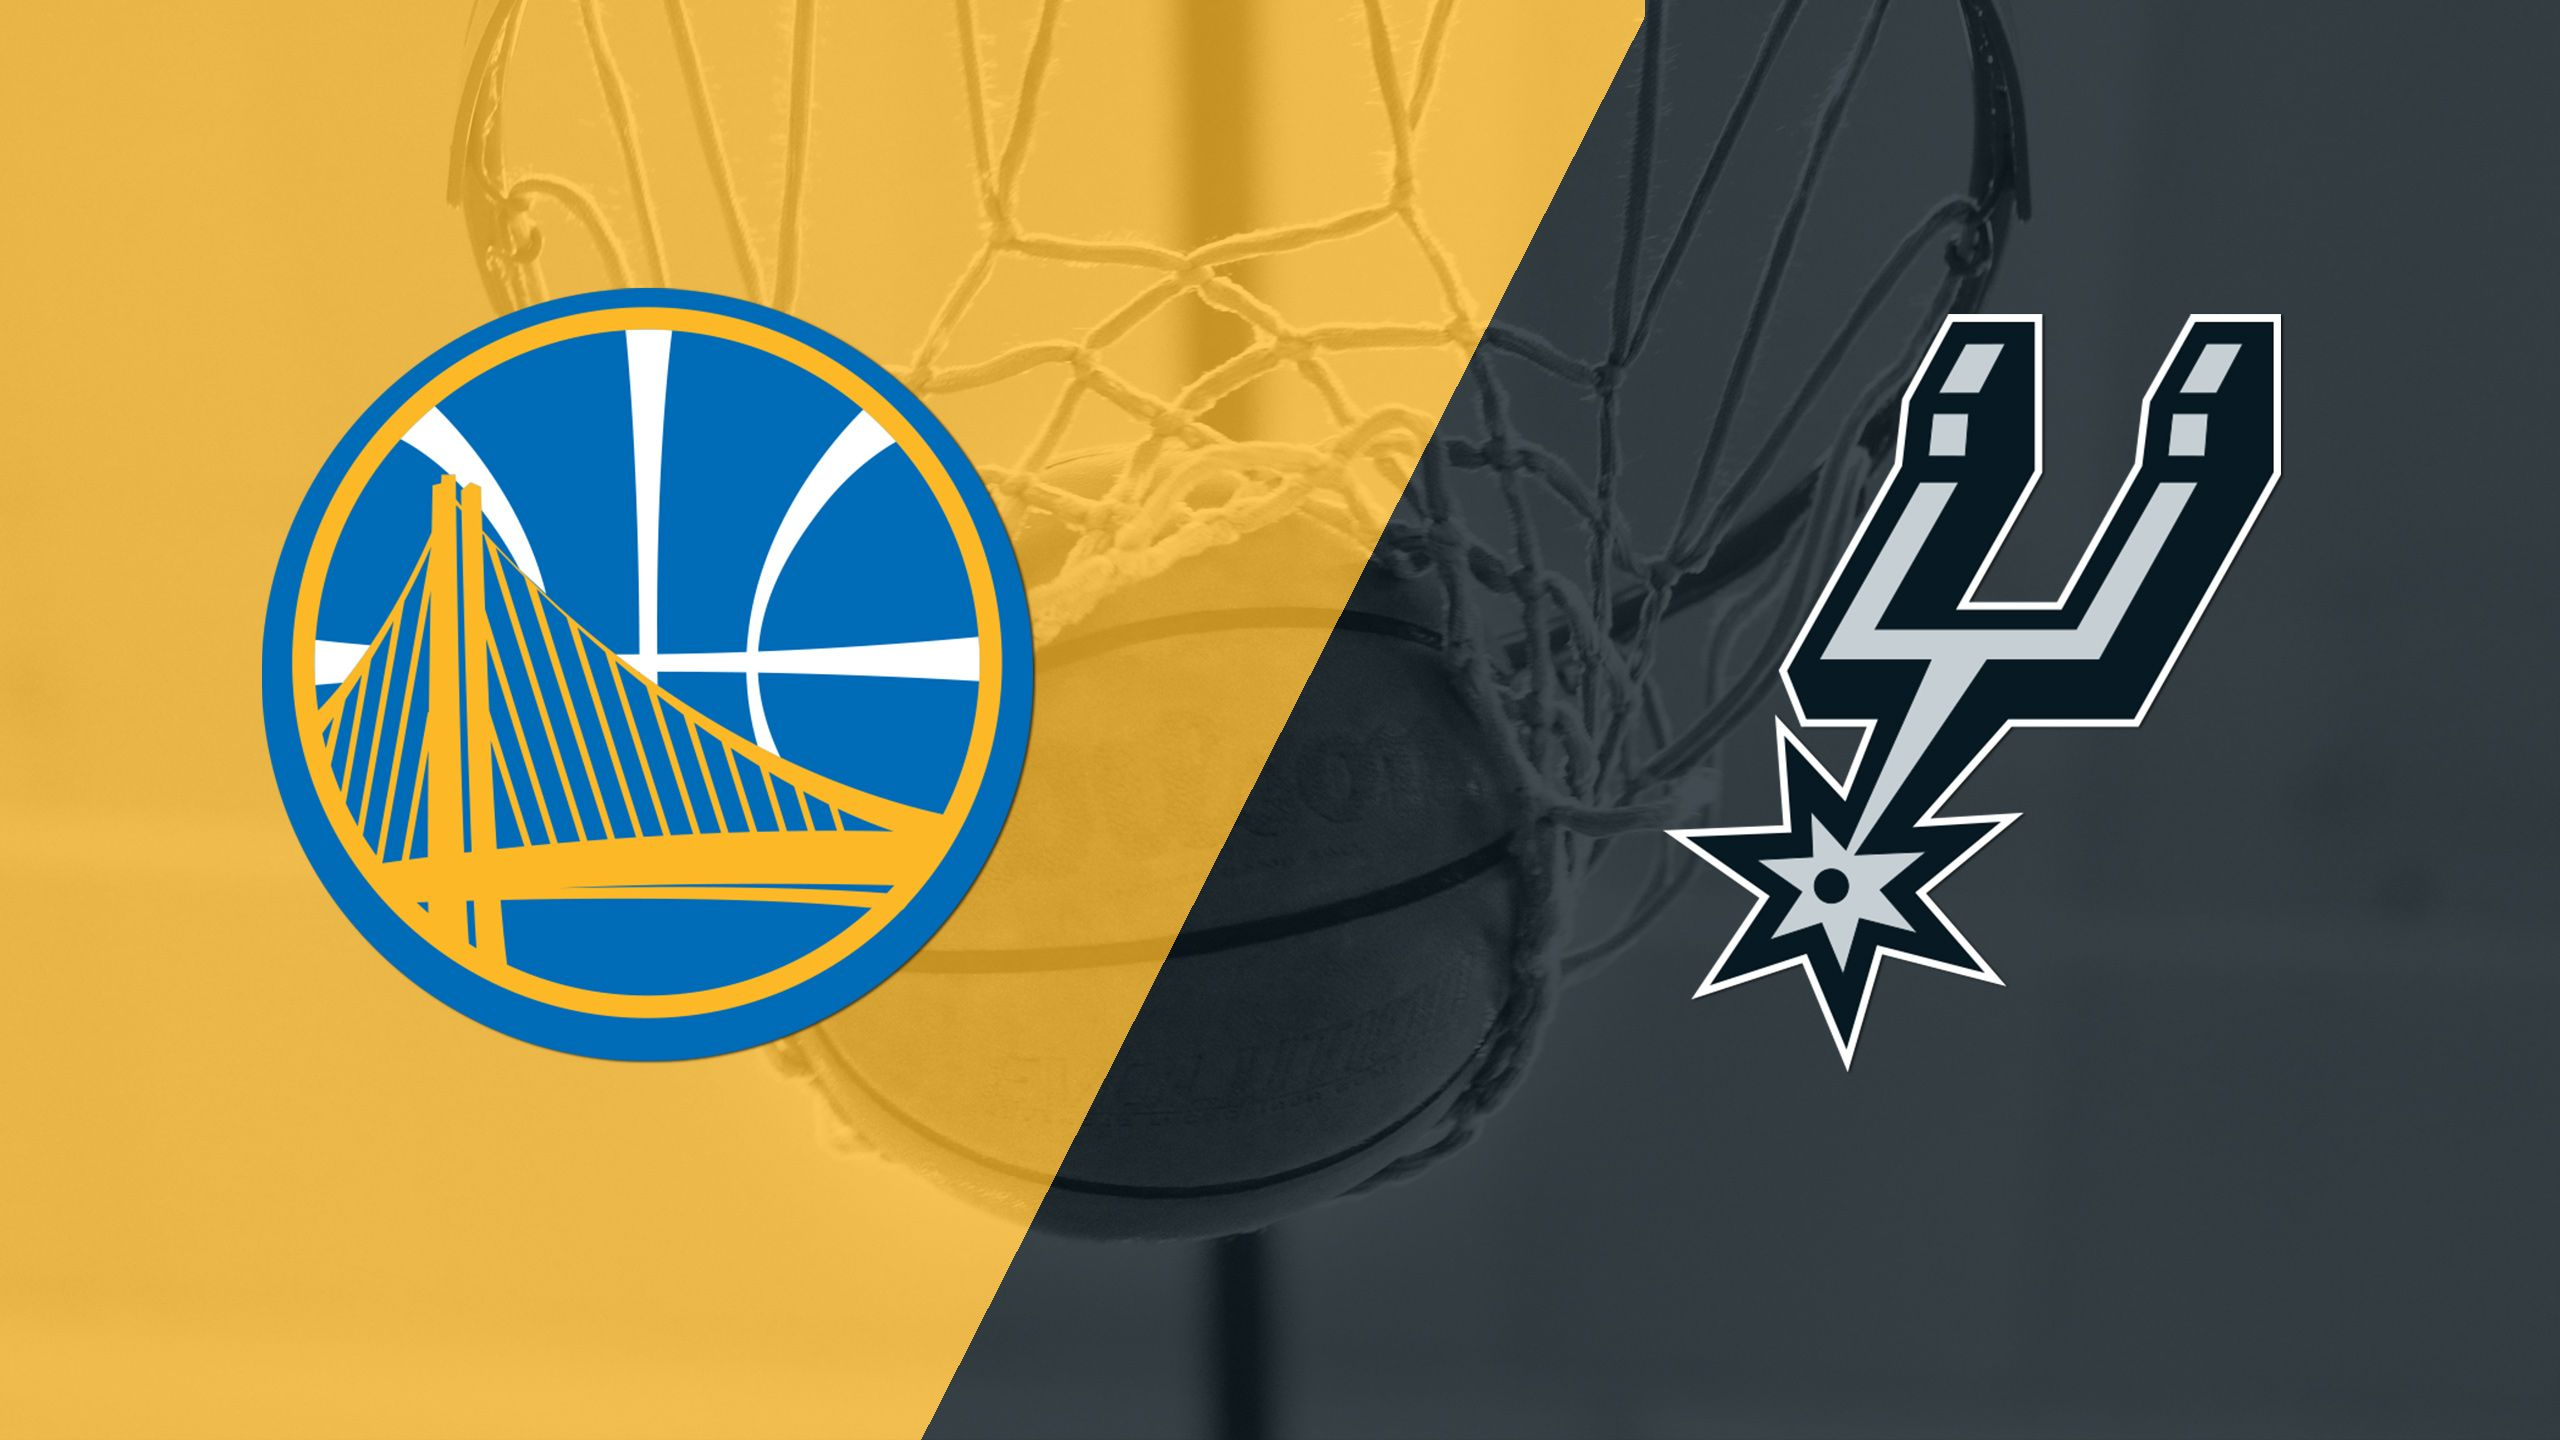 Data Center - Golden State Warriors vs. San Antonio Spurs (Conference Finals Game 3)